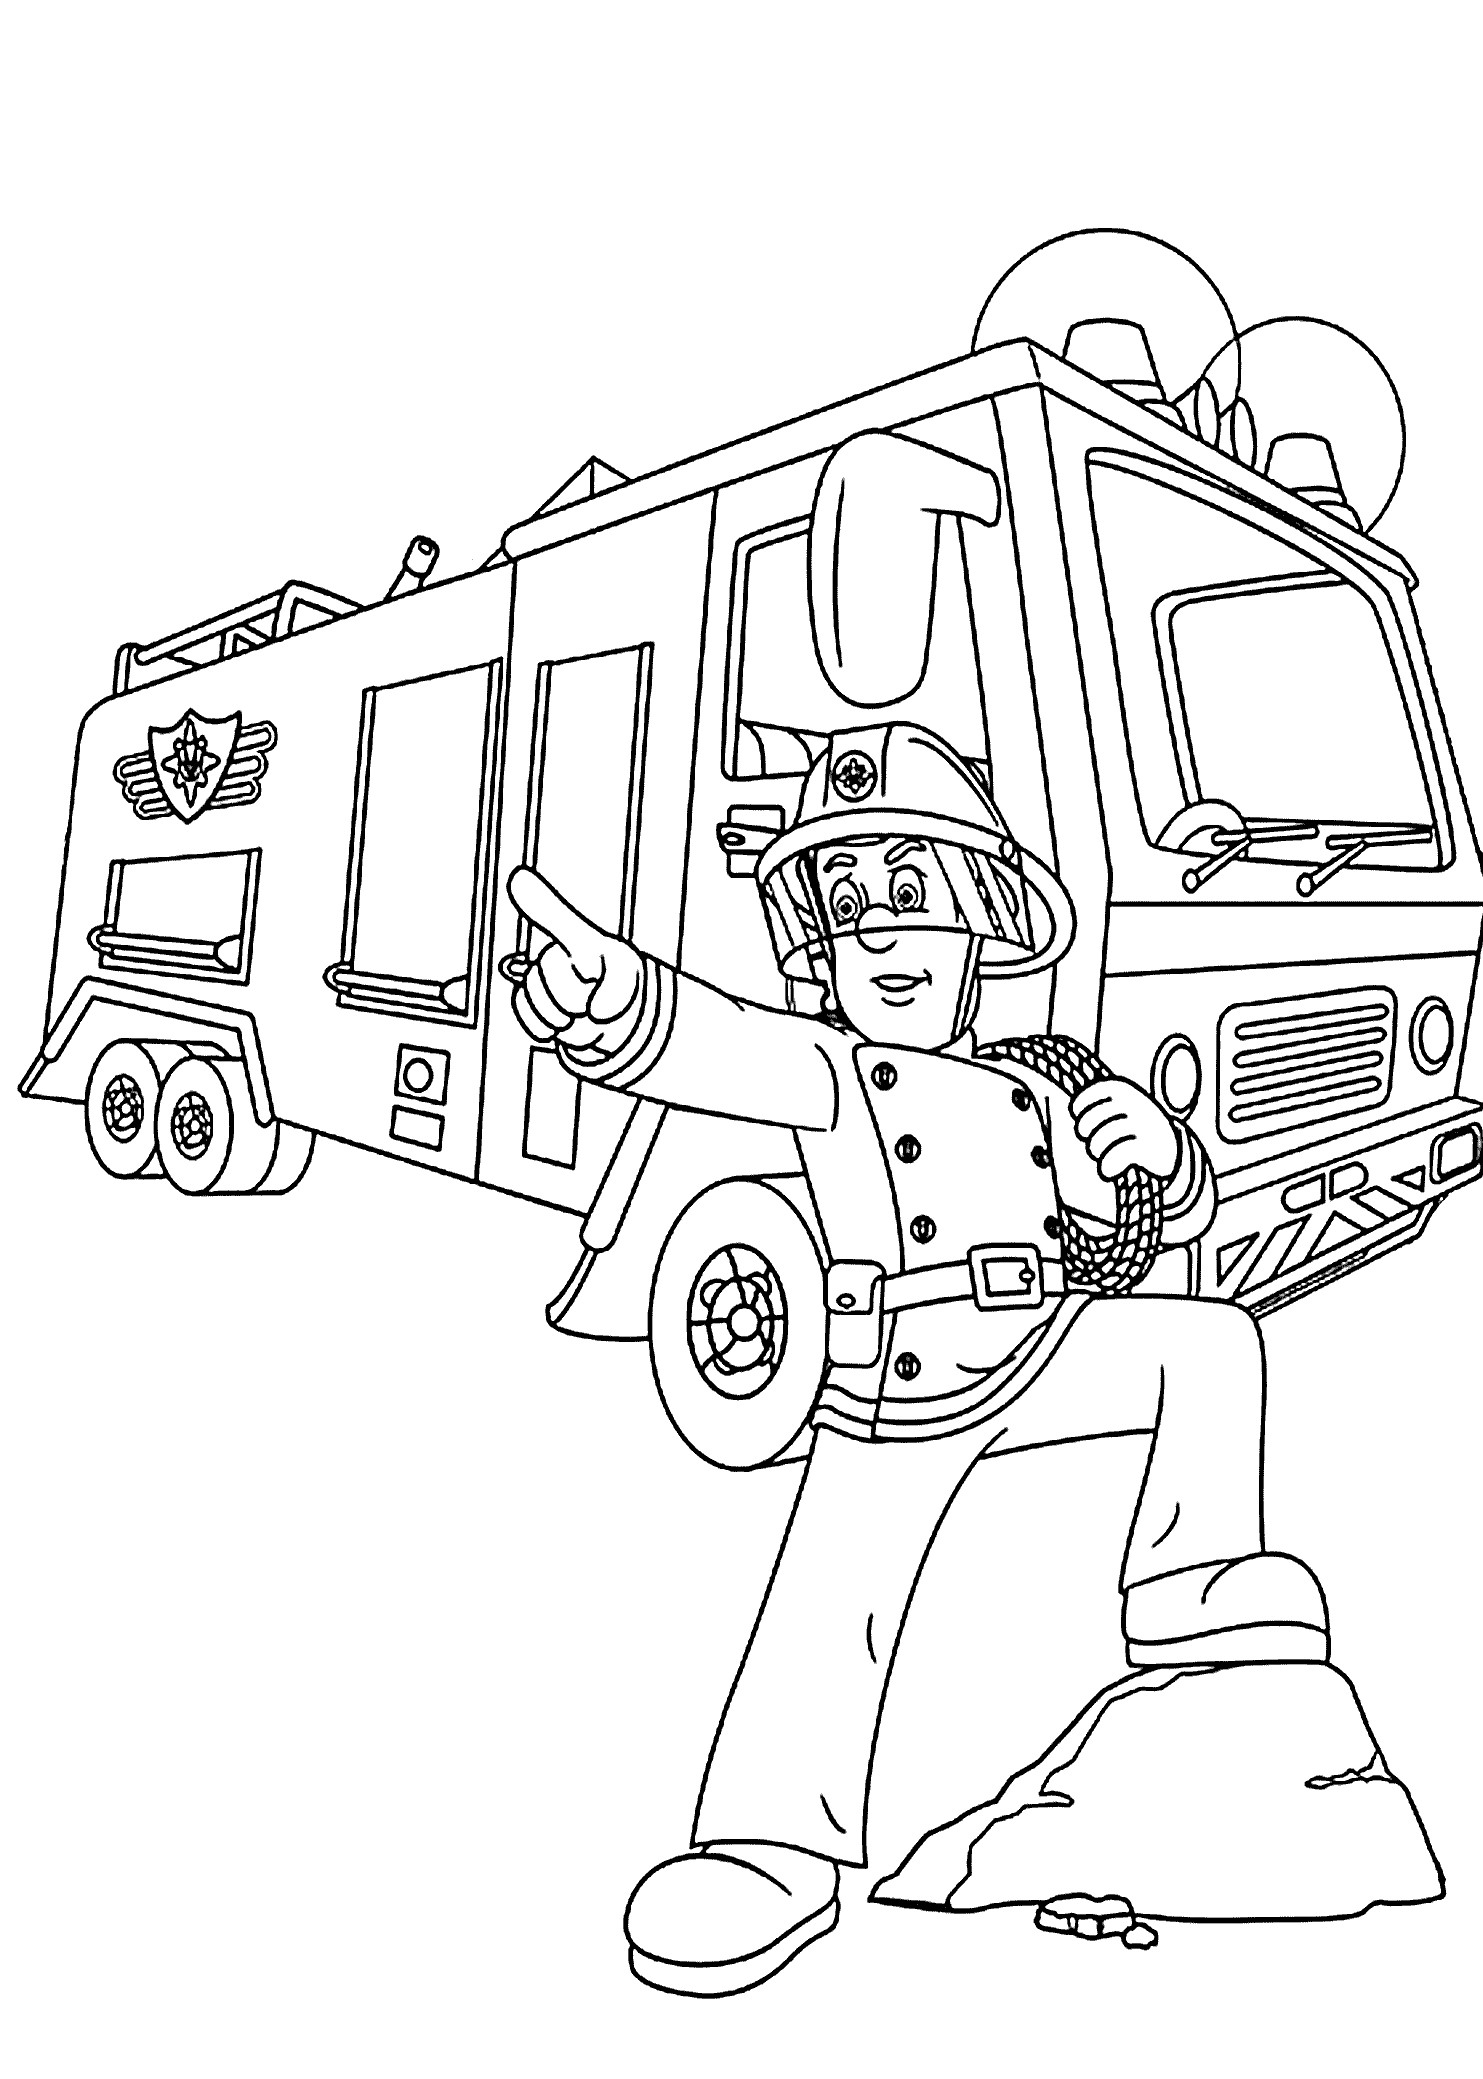 free fire truck coloring pages 16 fire truck coloring pages print color craft free coloring fire truck pages